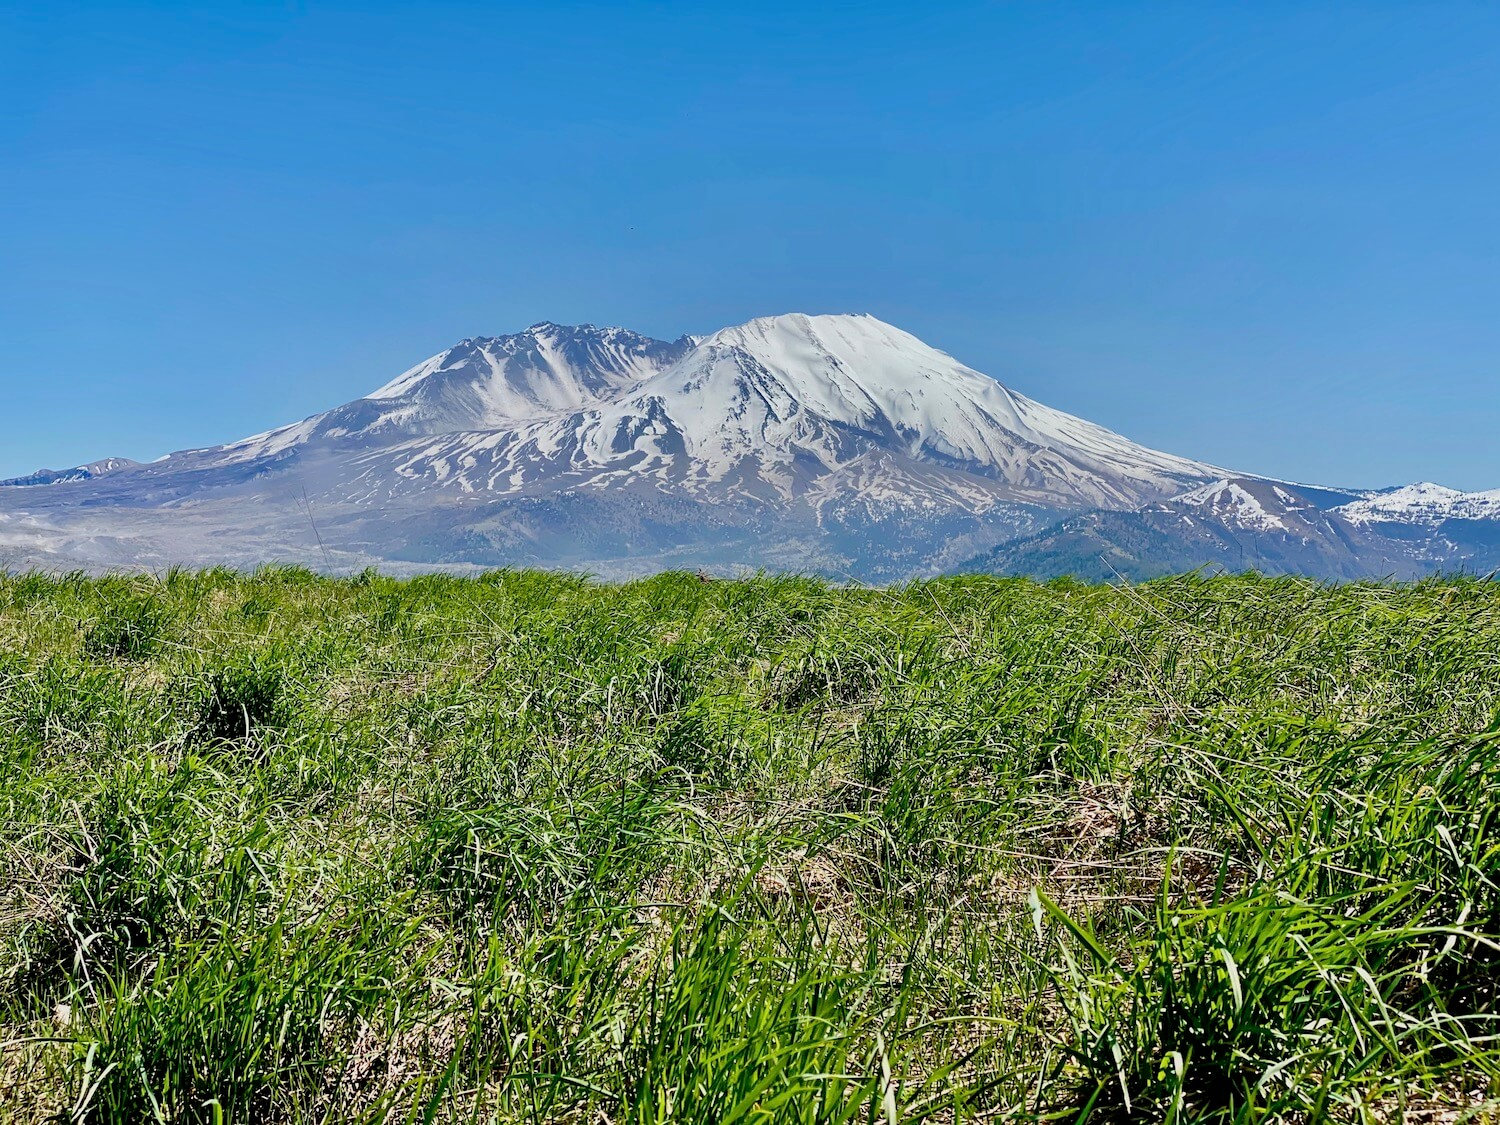 View of Mt. St. Helens on a blue sky sunny day from the Spirit Lake Memorial Highway. The grass is growing up bright green on a hillside the looks toward the snow-covered mountain with gray veins of rocky surfaces leading to largest areas of gray ashy ground. The sky is bright blue.